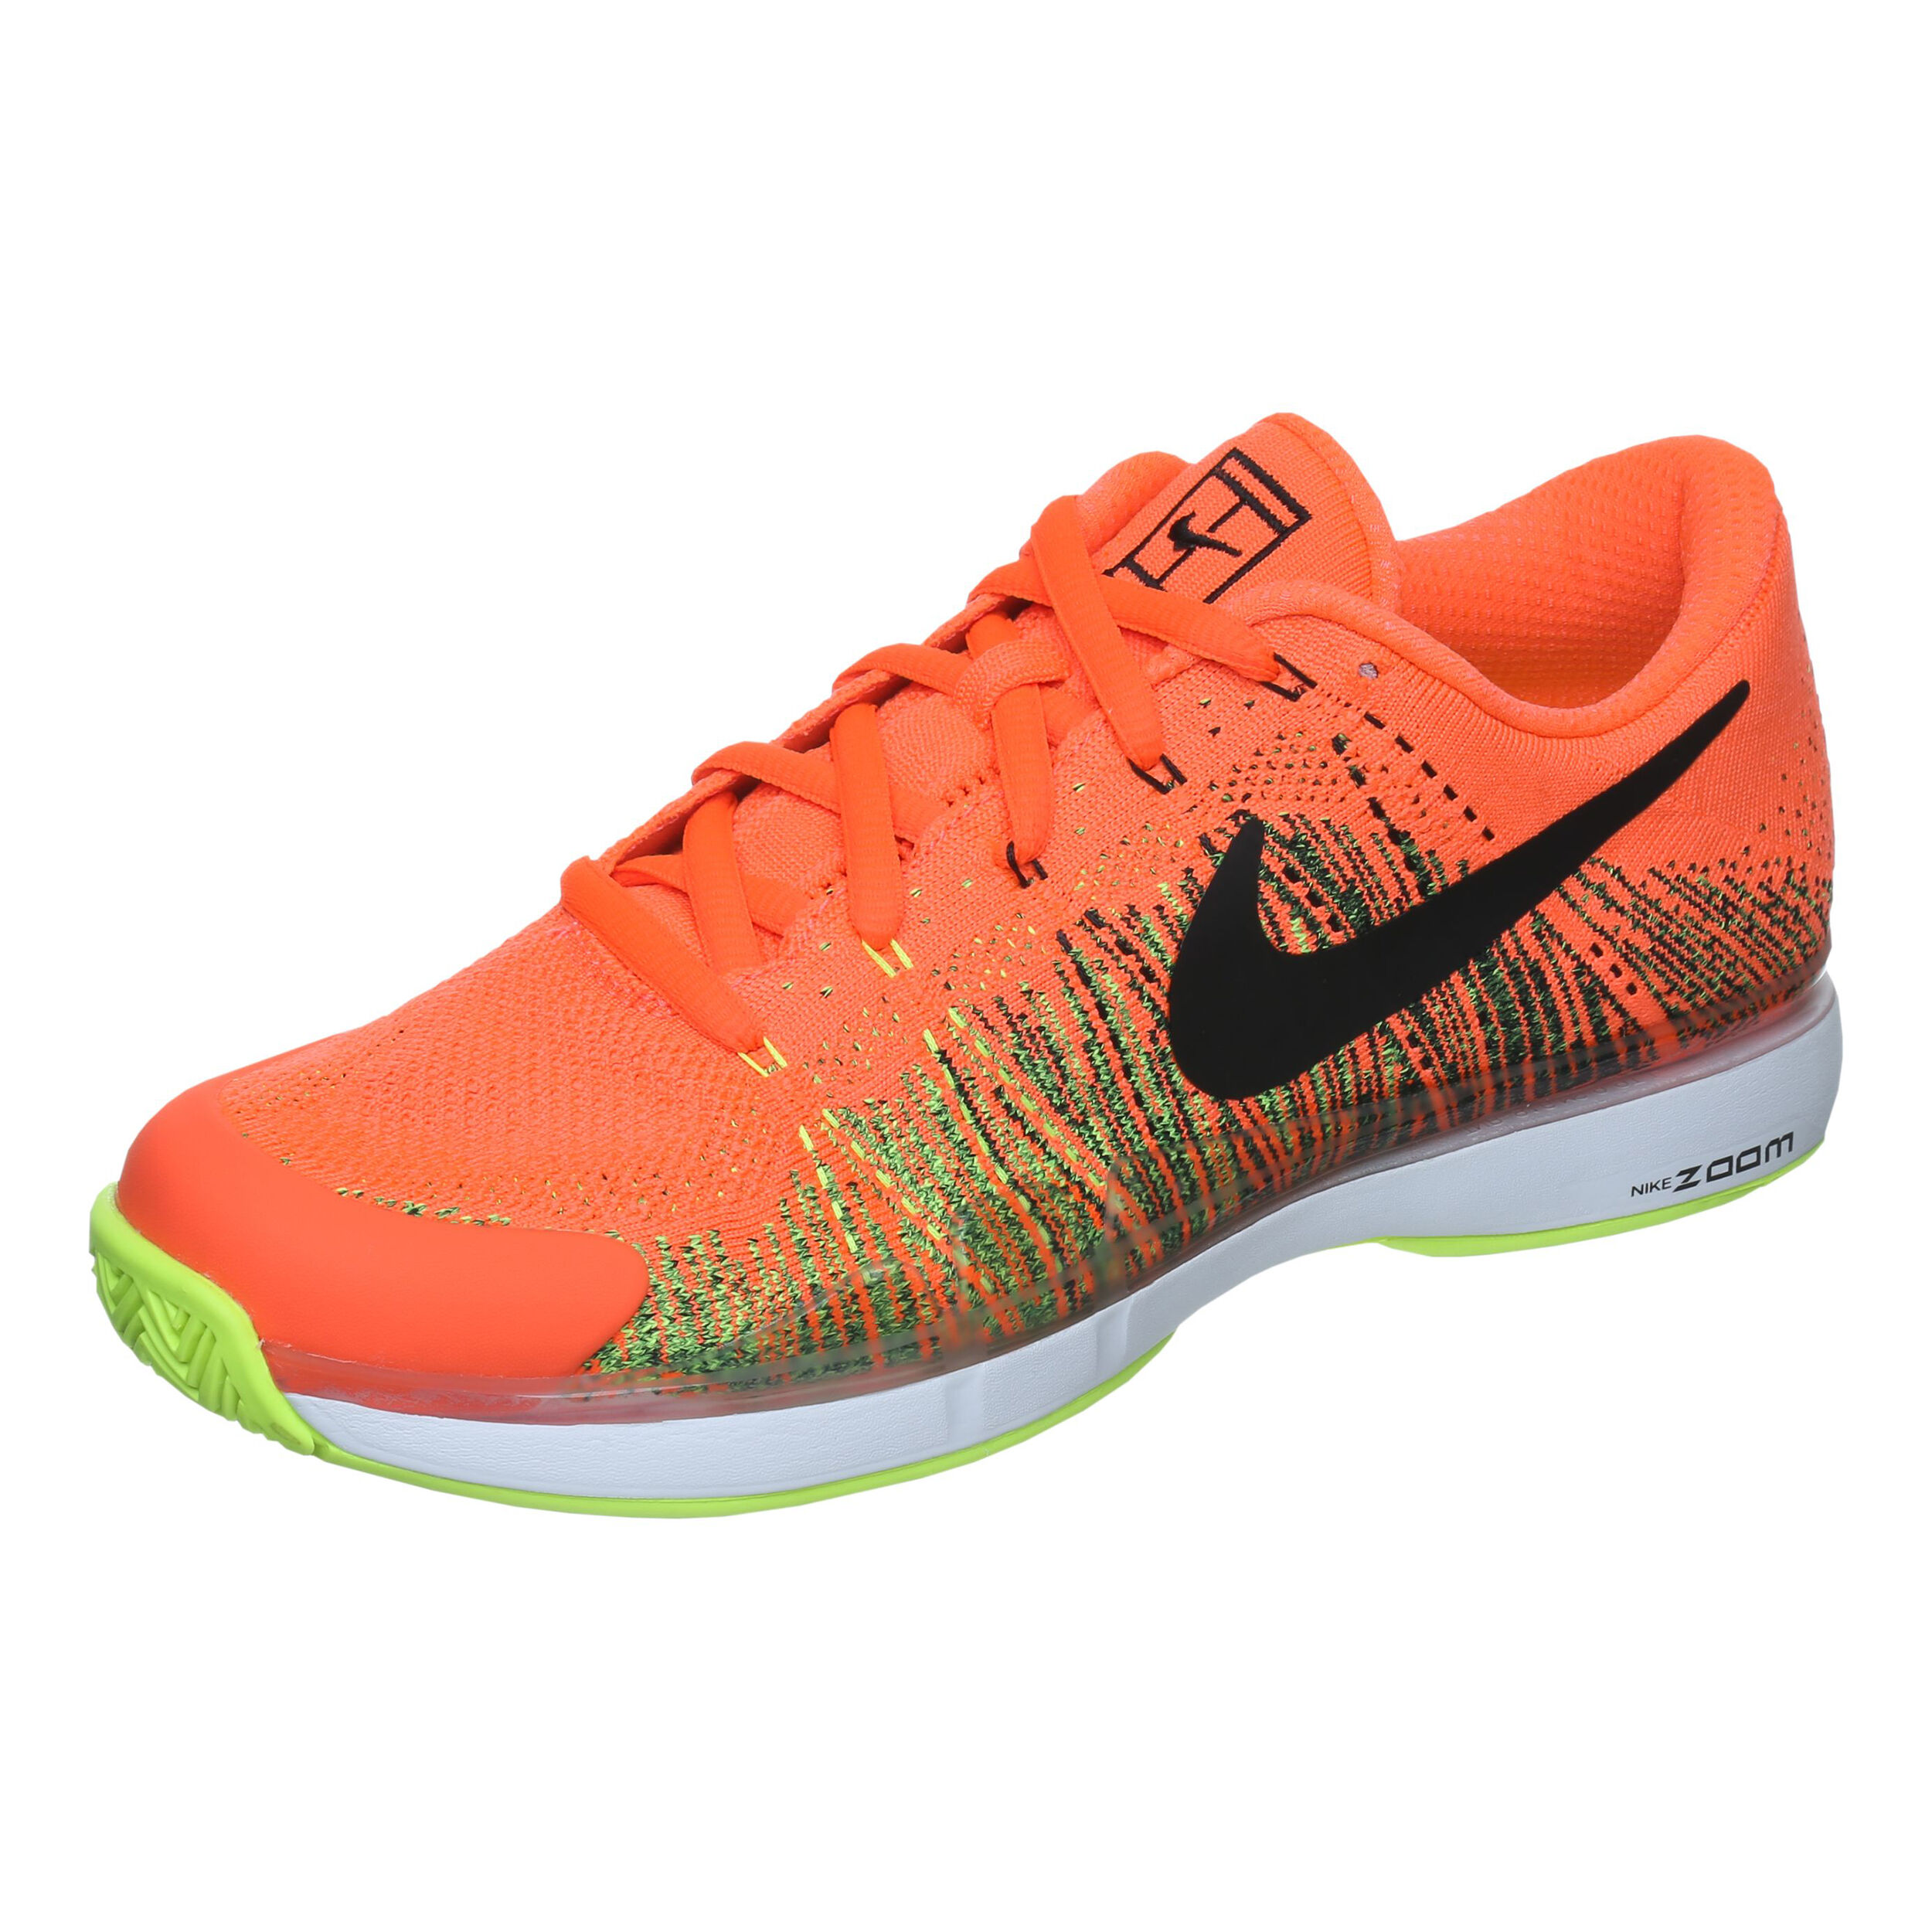 Nike Zoom Vapor Flyknit Chaussures Toutes Surfaces Hommes